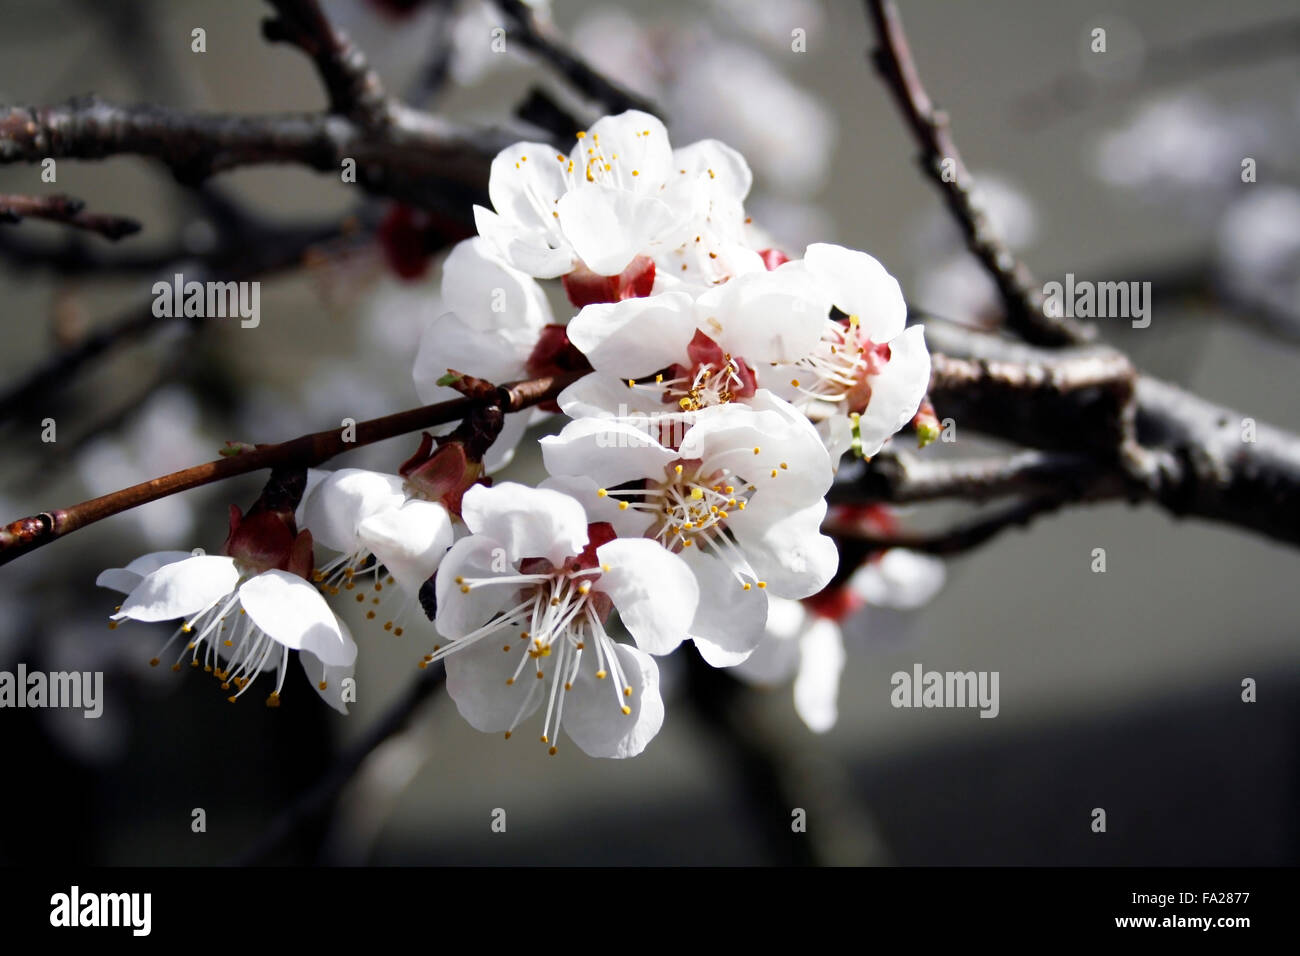 Macro image of blossoming apricot flowers - Stock Image